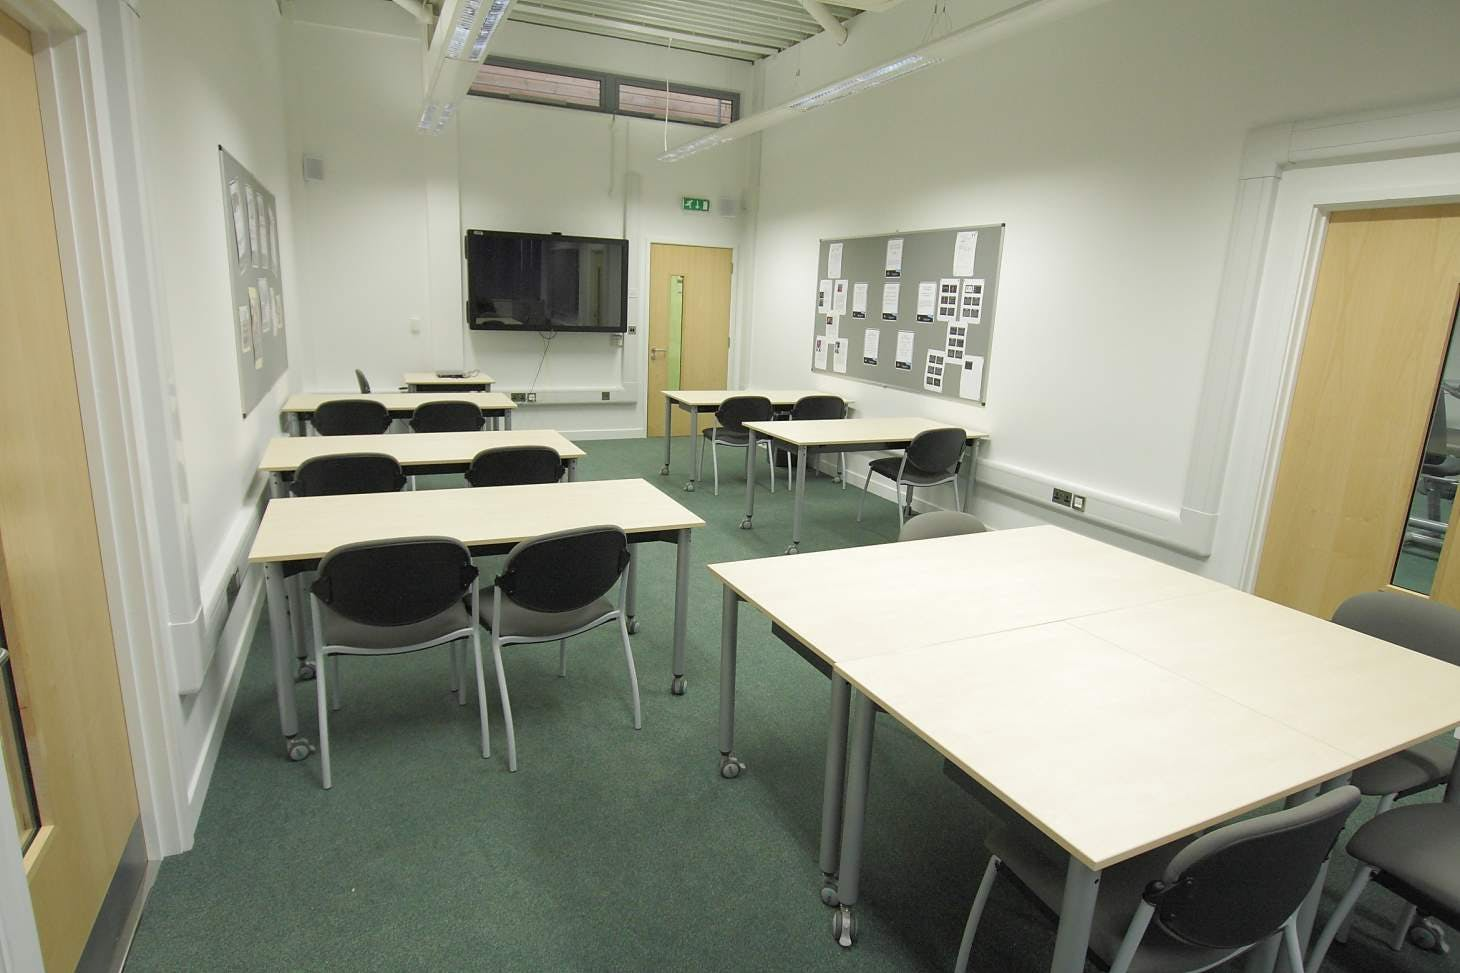 Wellsway Sports Centre Classroom space hire